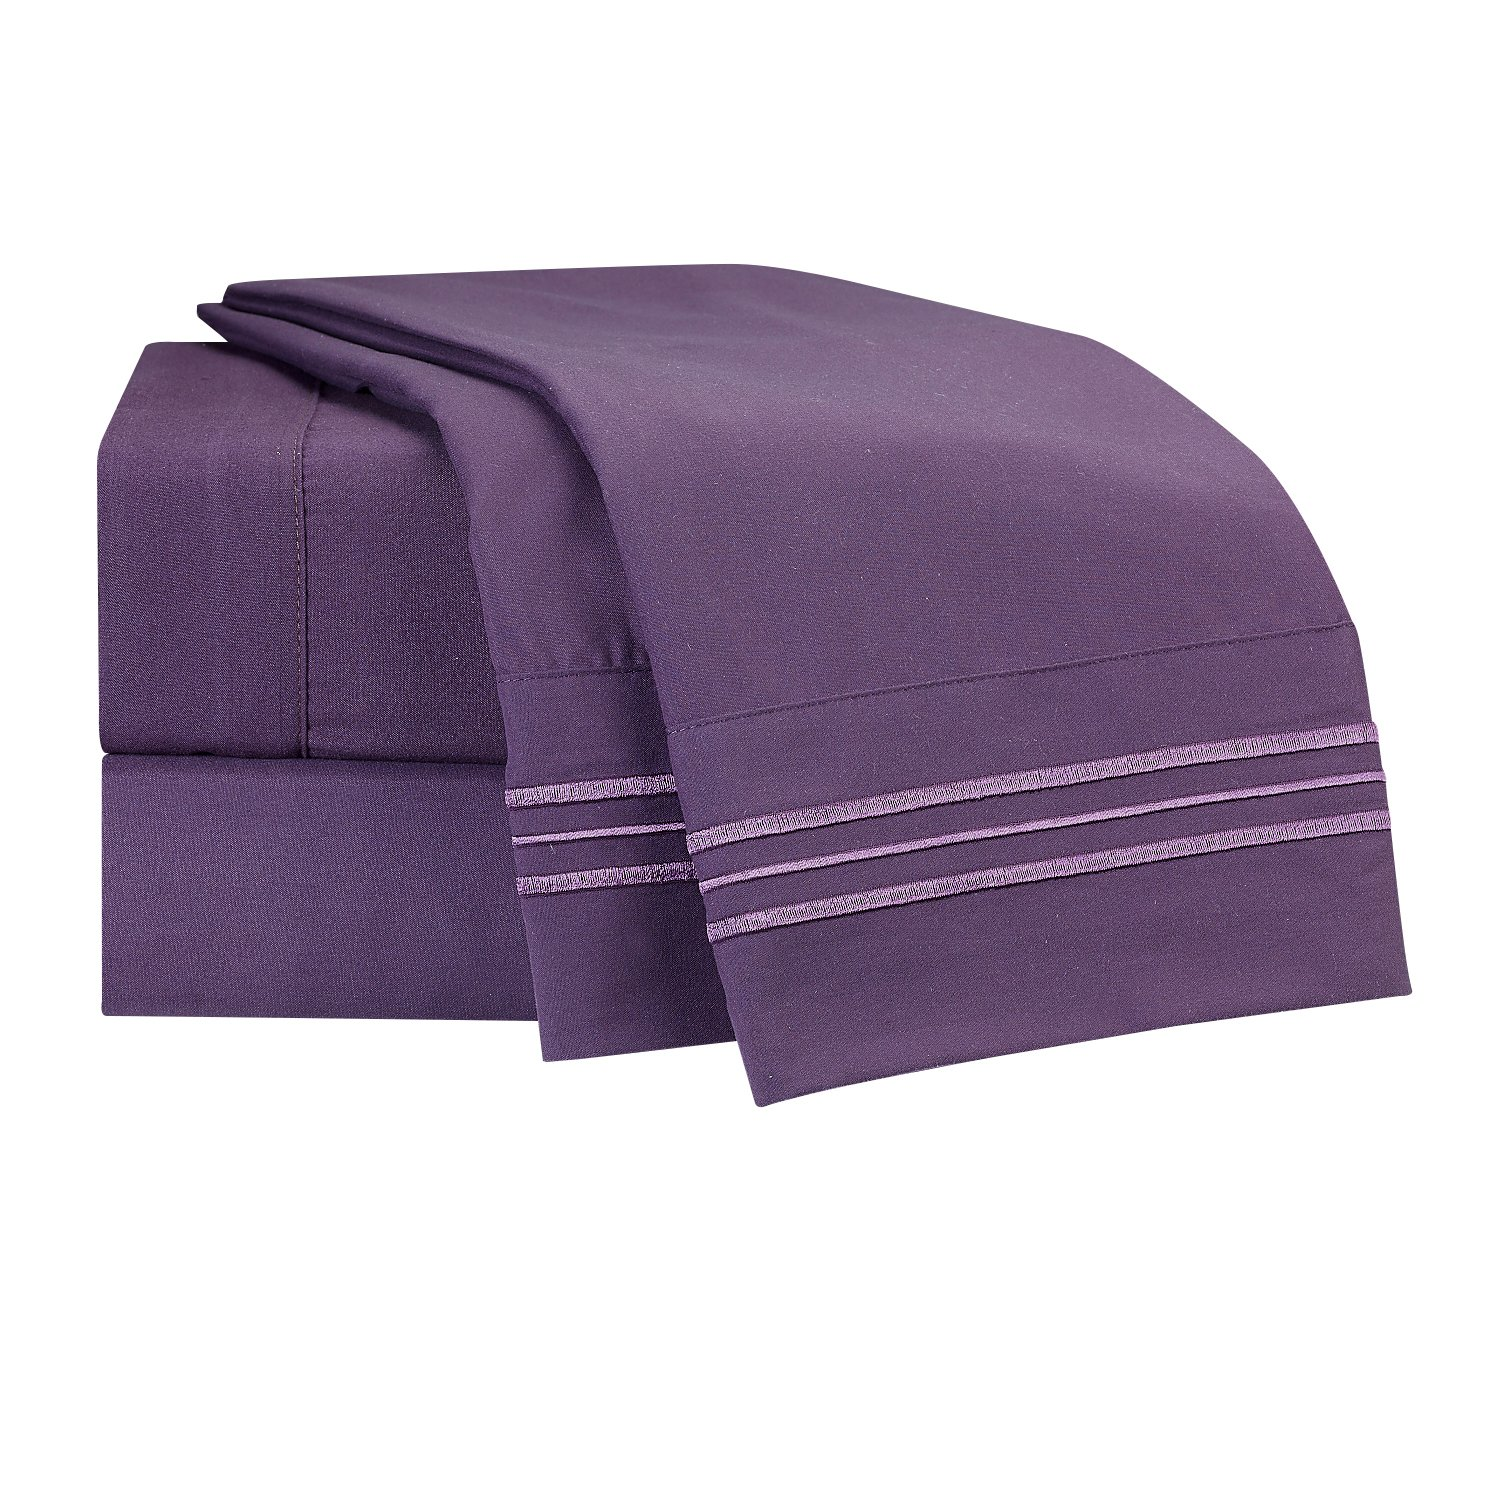 Clara Clark Premier 1800 Collection 4pc Bed Sheet Set - Queen Size, Purple Eggplant,